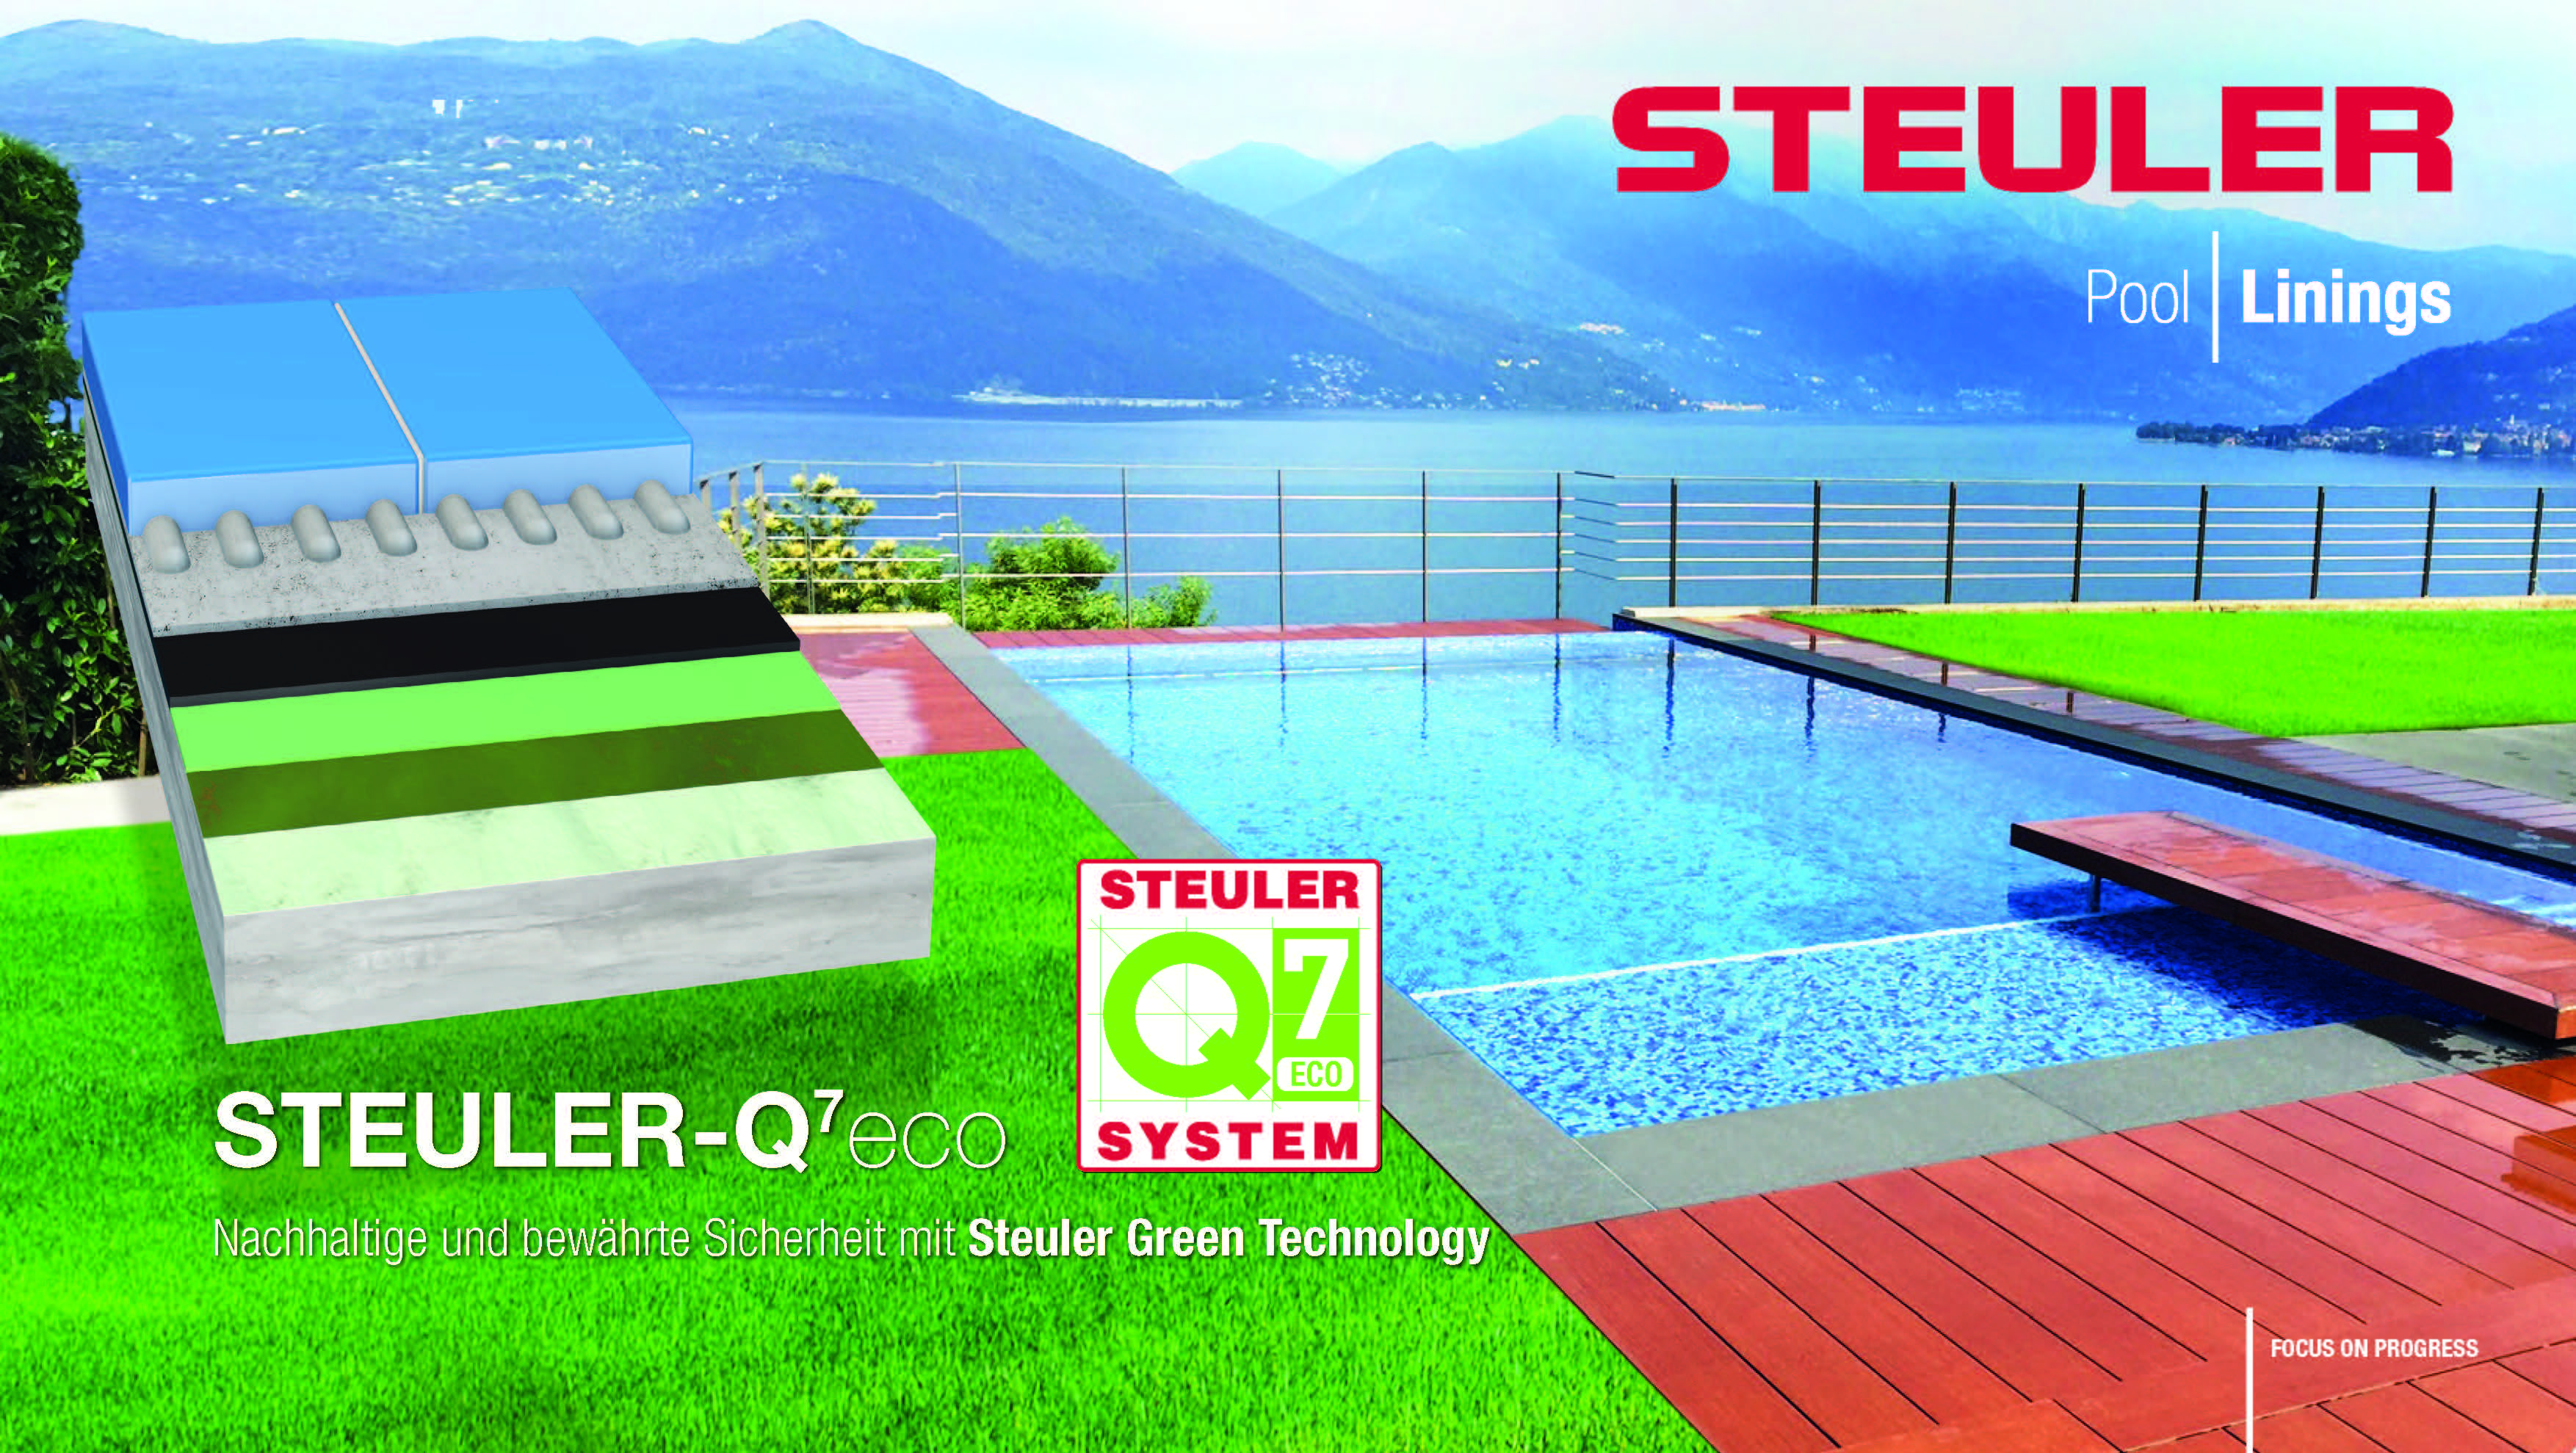 STEULER-Q7eco InnvoationAward